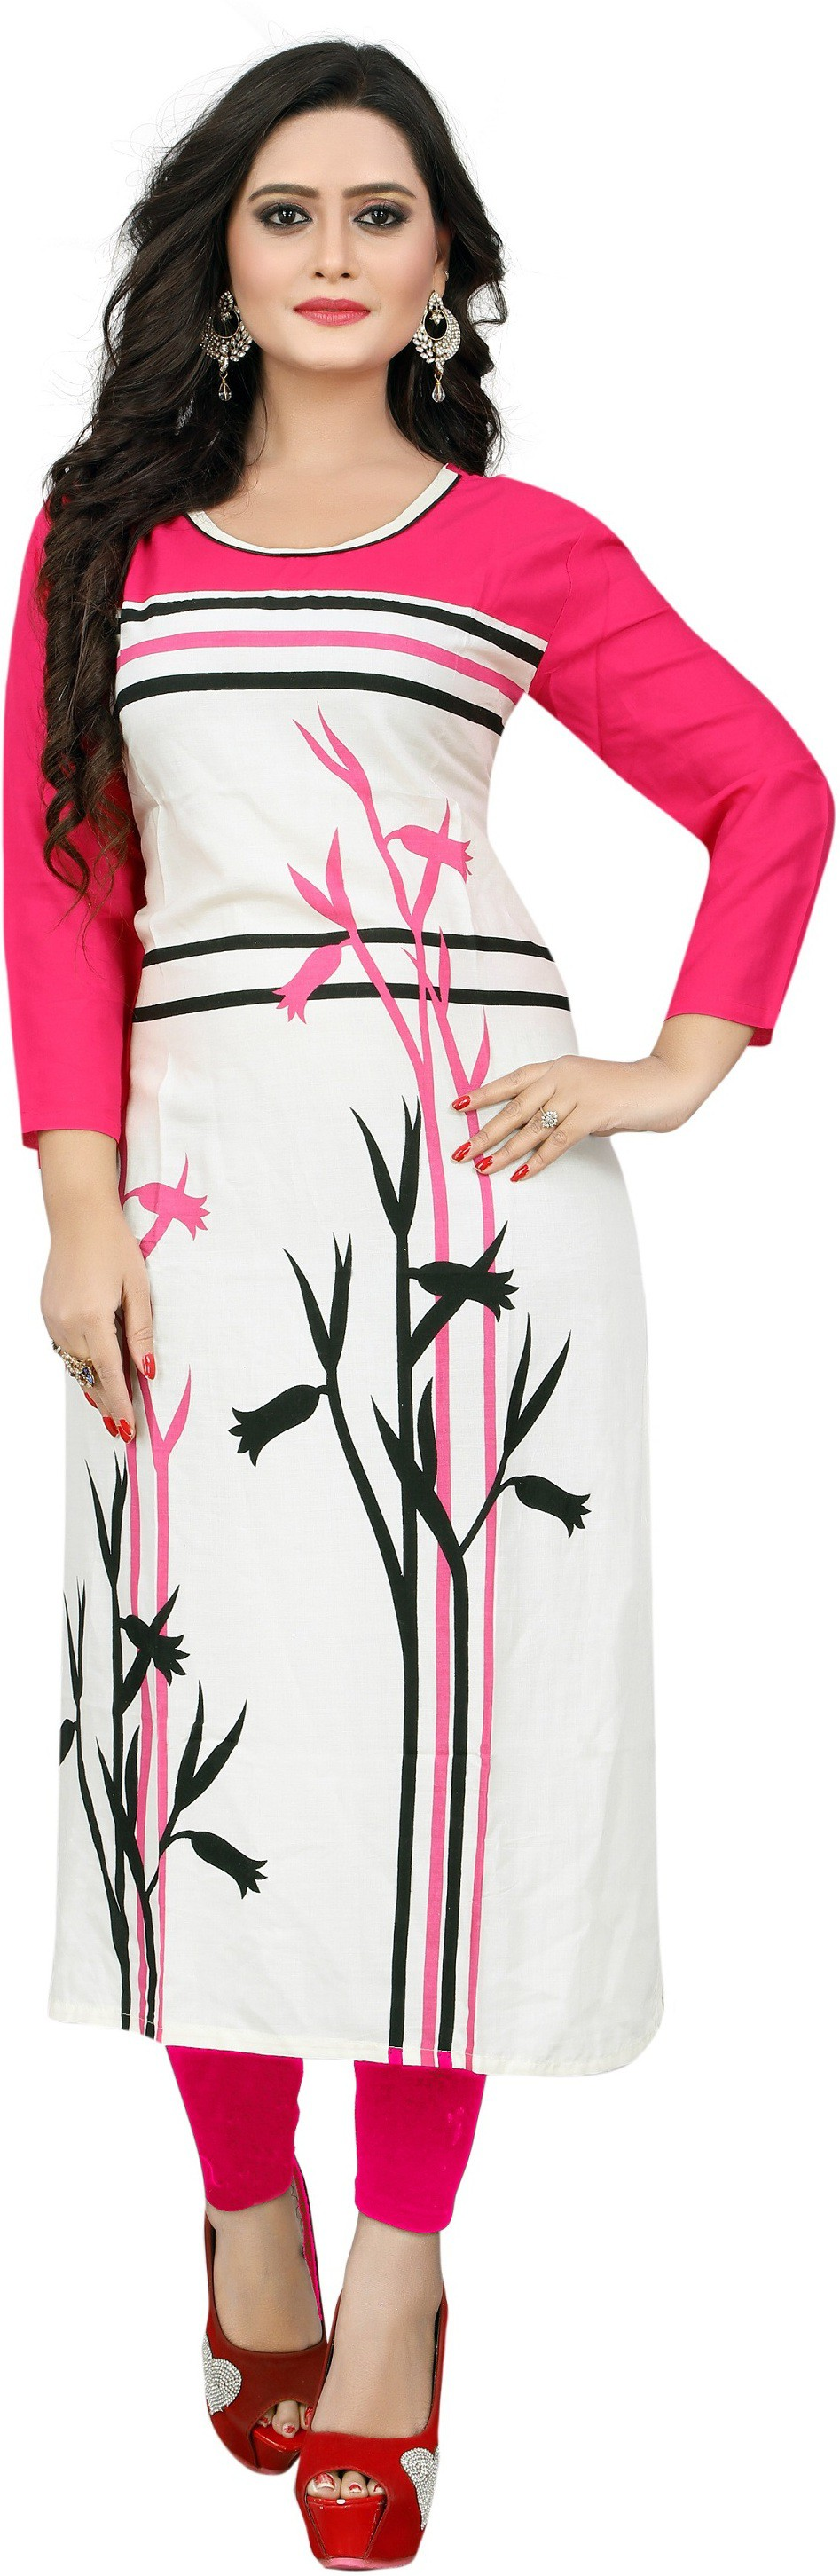 Flipkart - Dresses, Tops... Best Top Wear